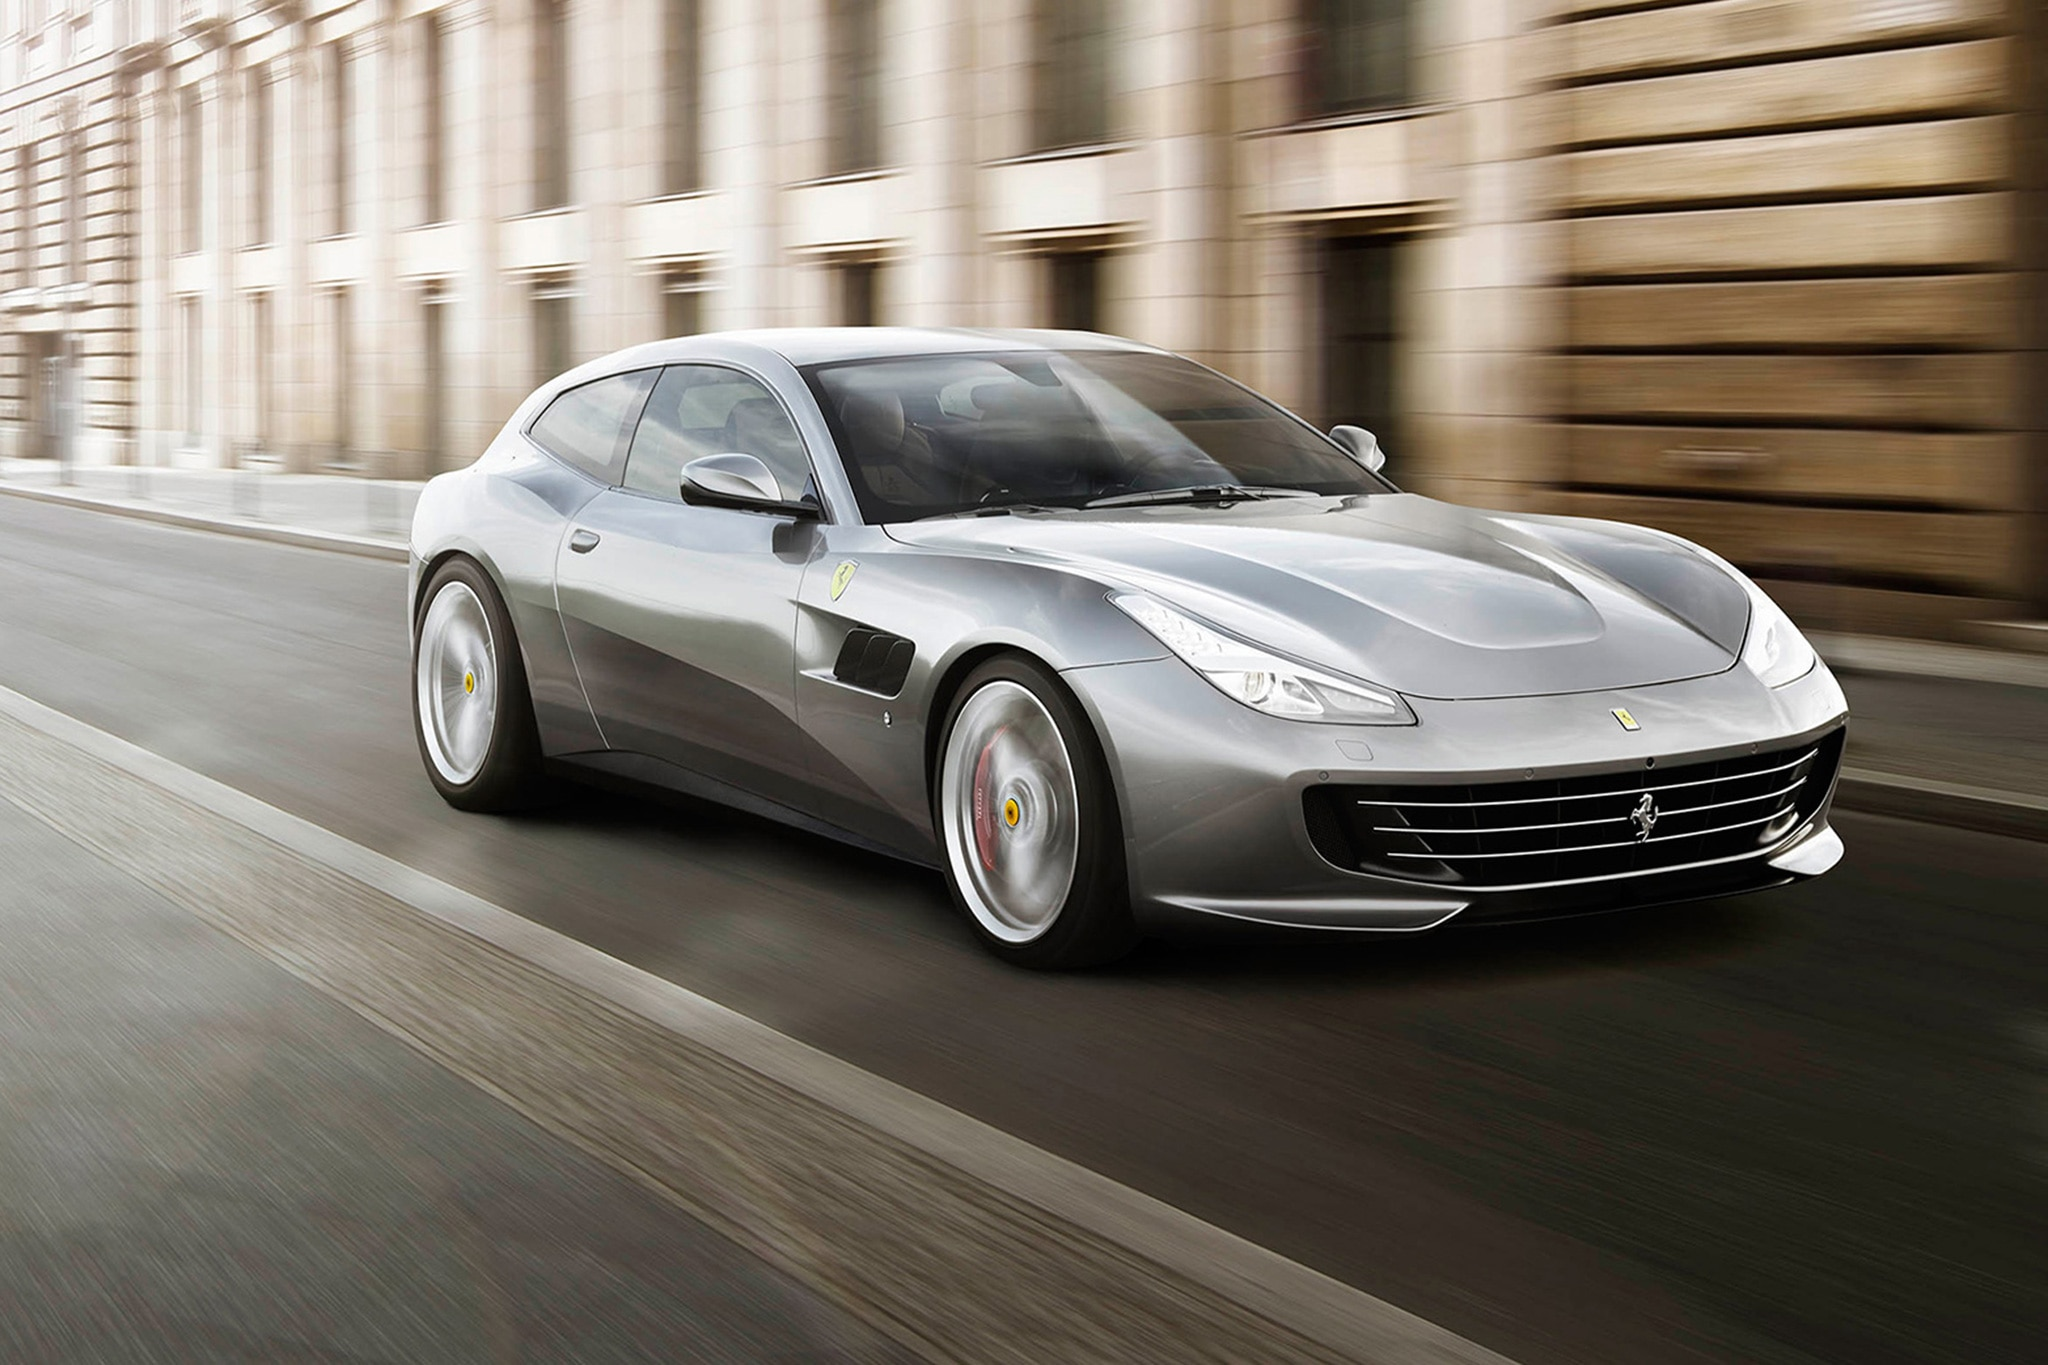 small resolution of 2018 ferrari gtc4lusso t front three quarter in motion 01